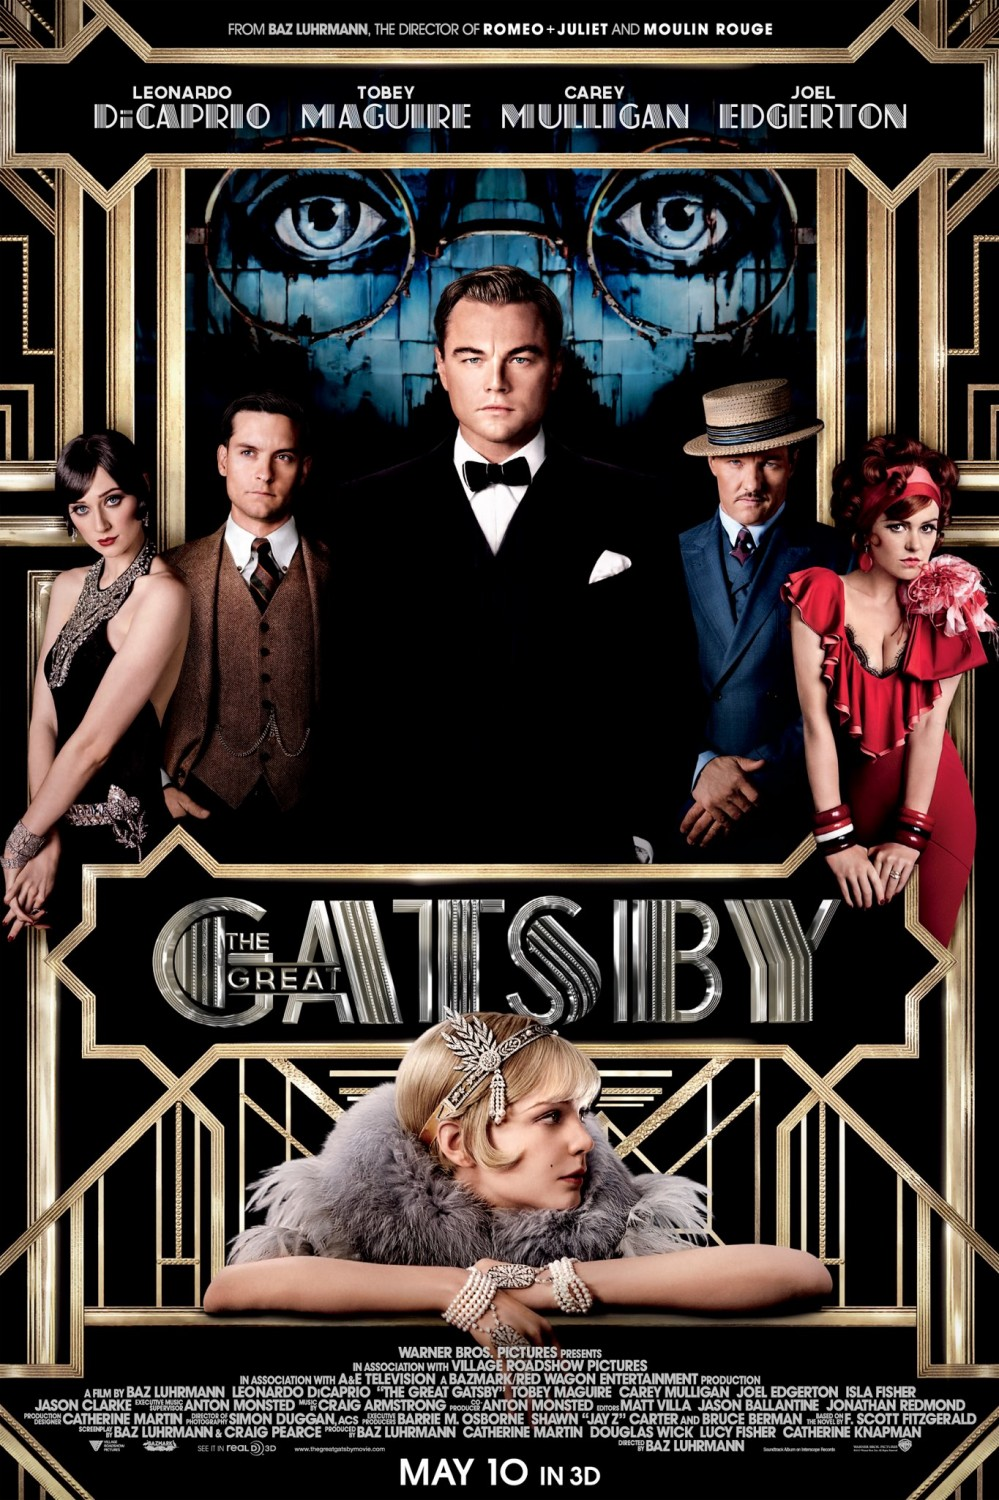 Extra Large Movie Poster Image for The Great Gatsby